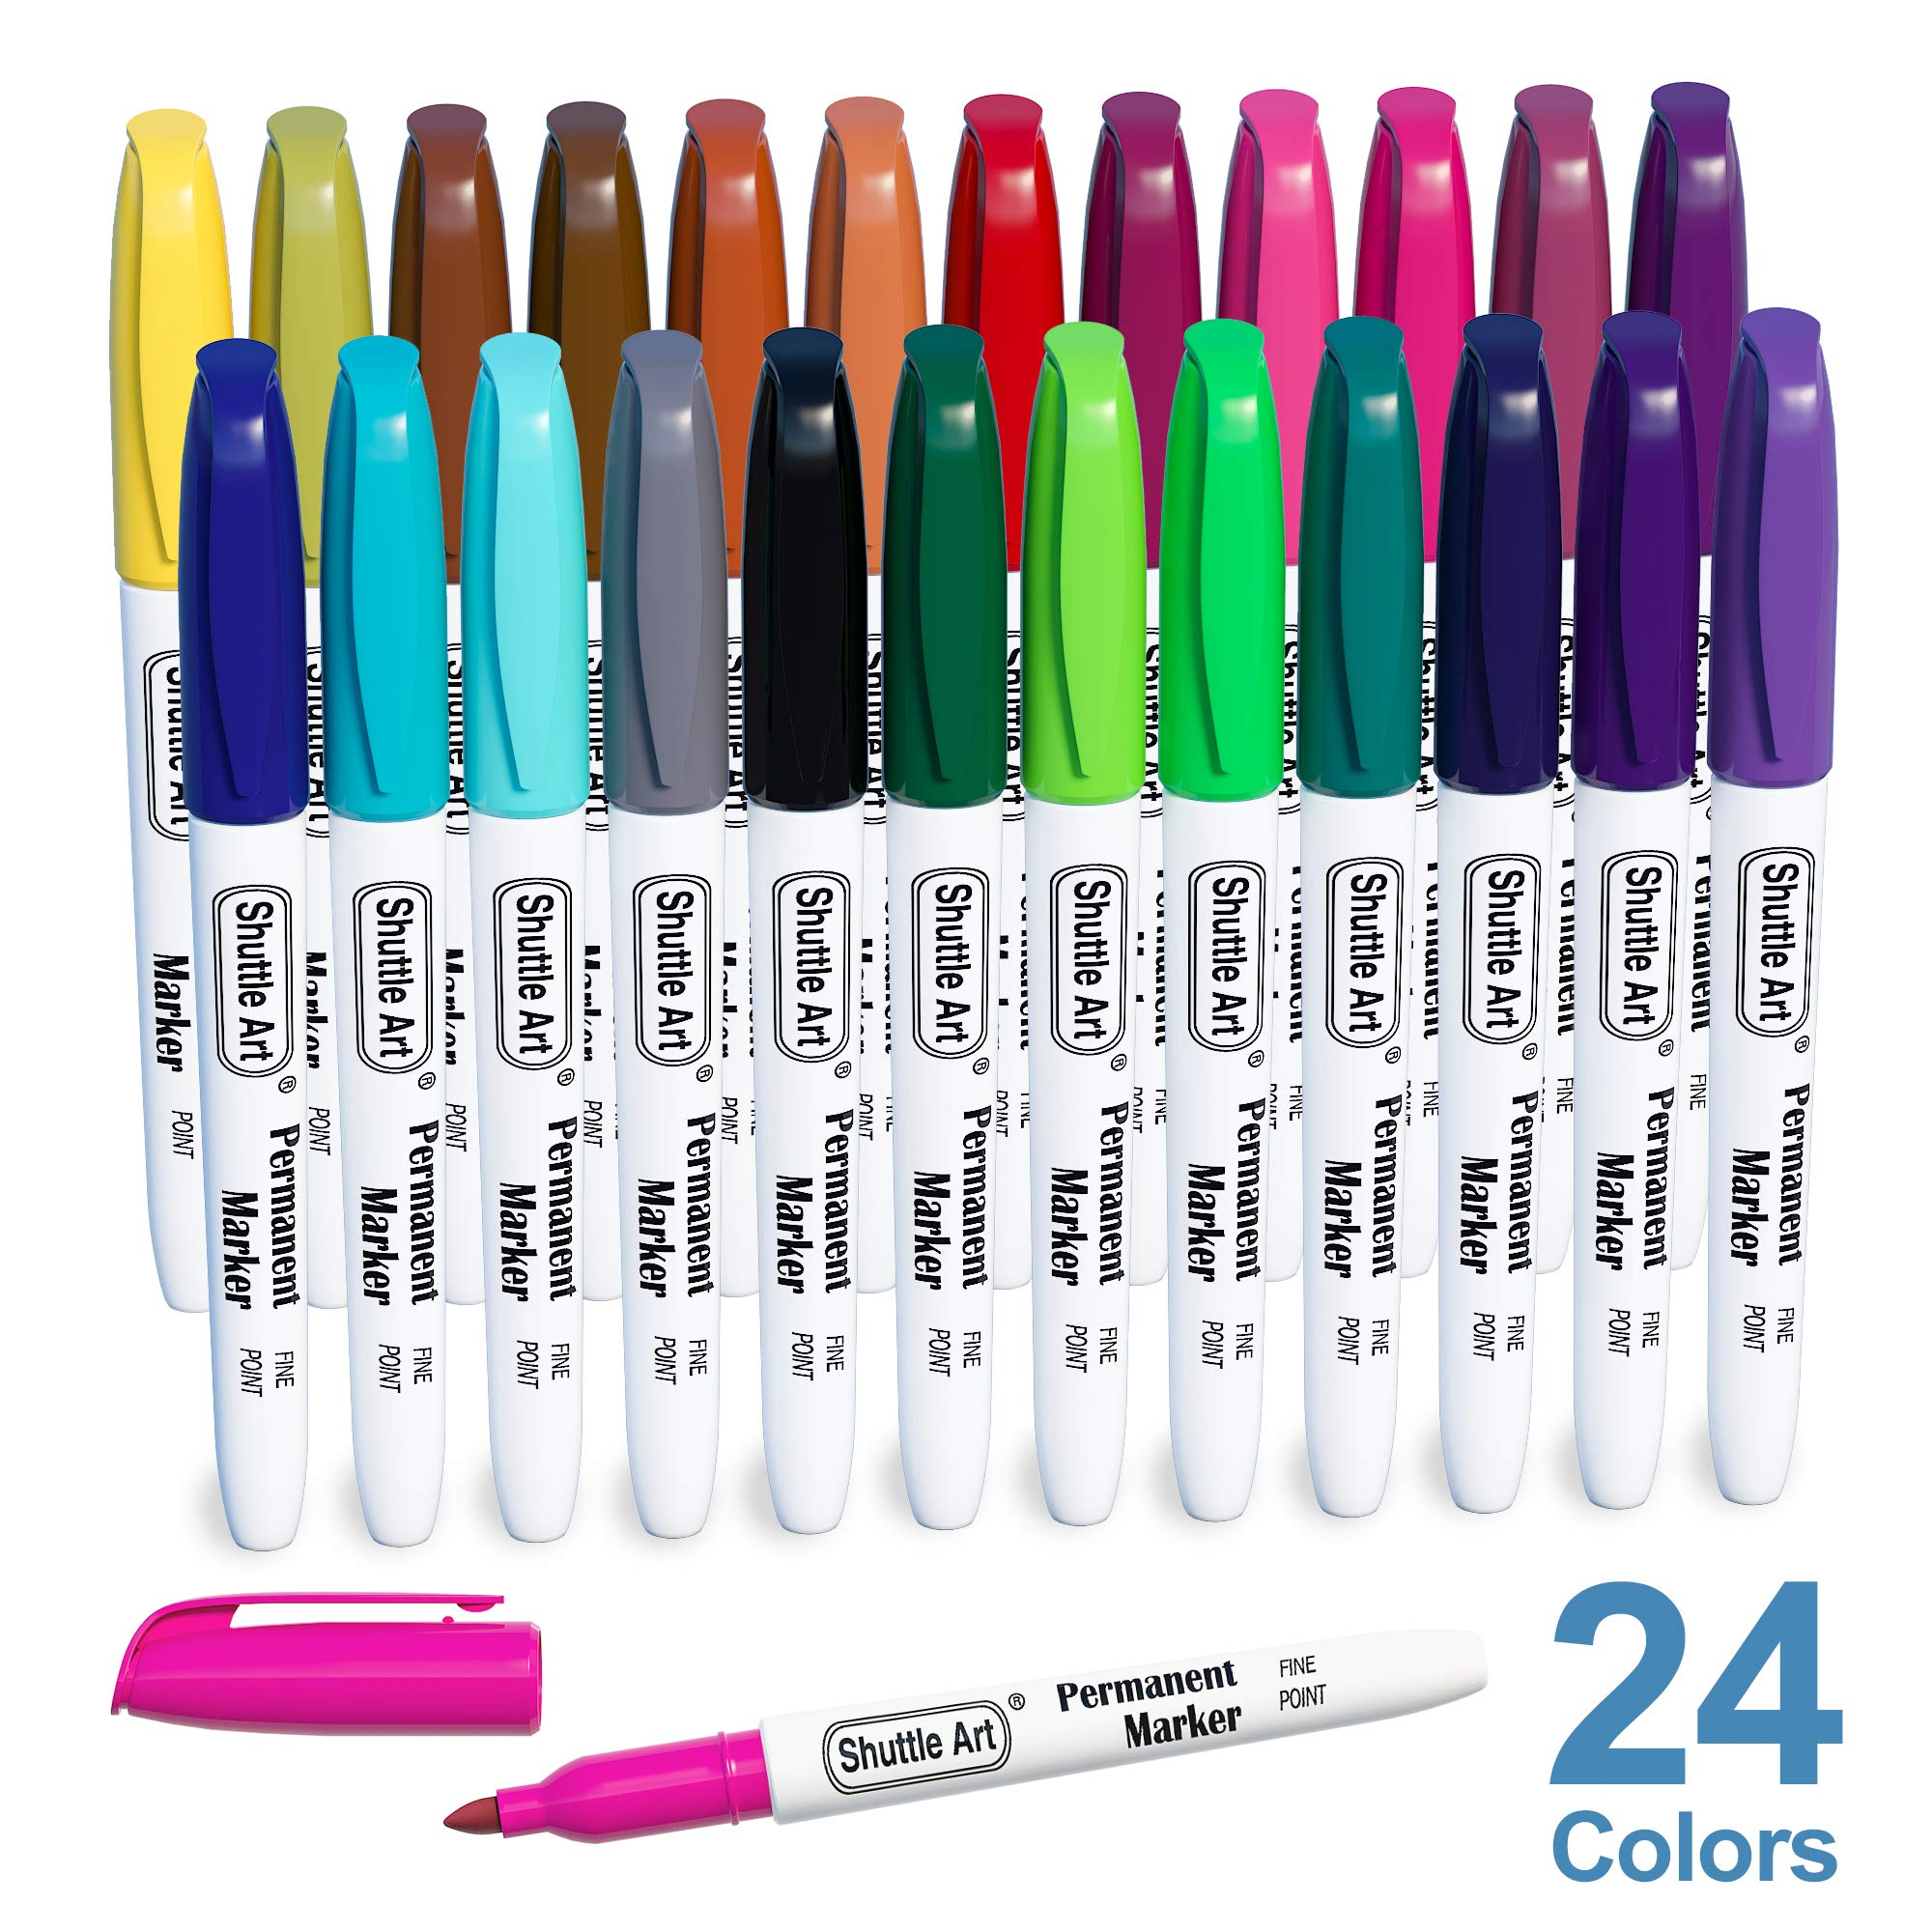 셔틀 아트 24색 마커 펜 세트 Shuttle Art Permanent Markers, 24 Colors Fine Point Assorted Colors Permanent Marker Set